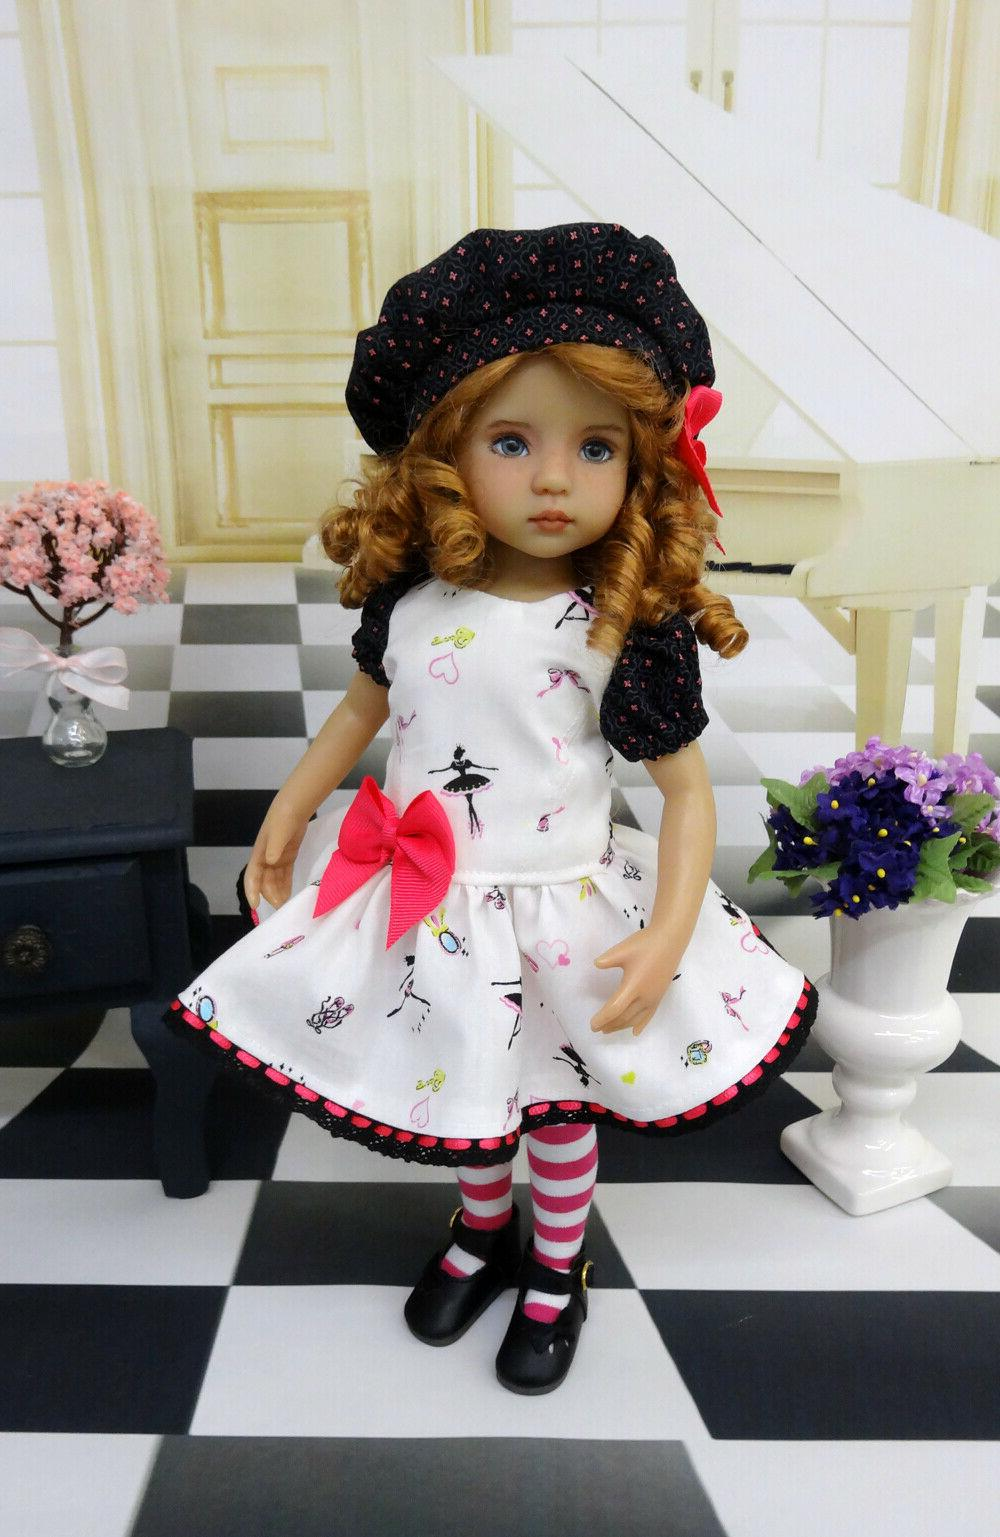 Tiny Dancer dress, hat, tights & shoes for Darling Doll BJD